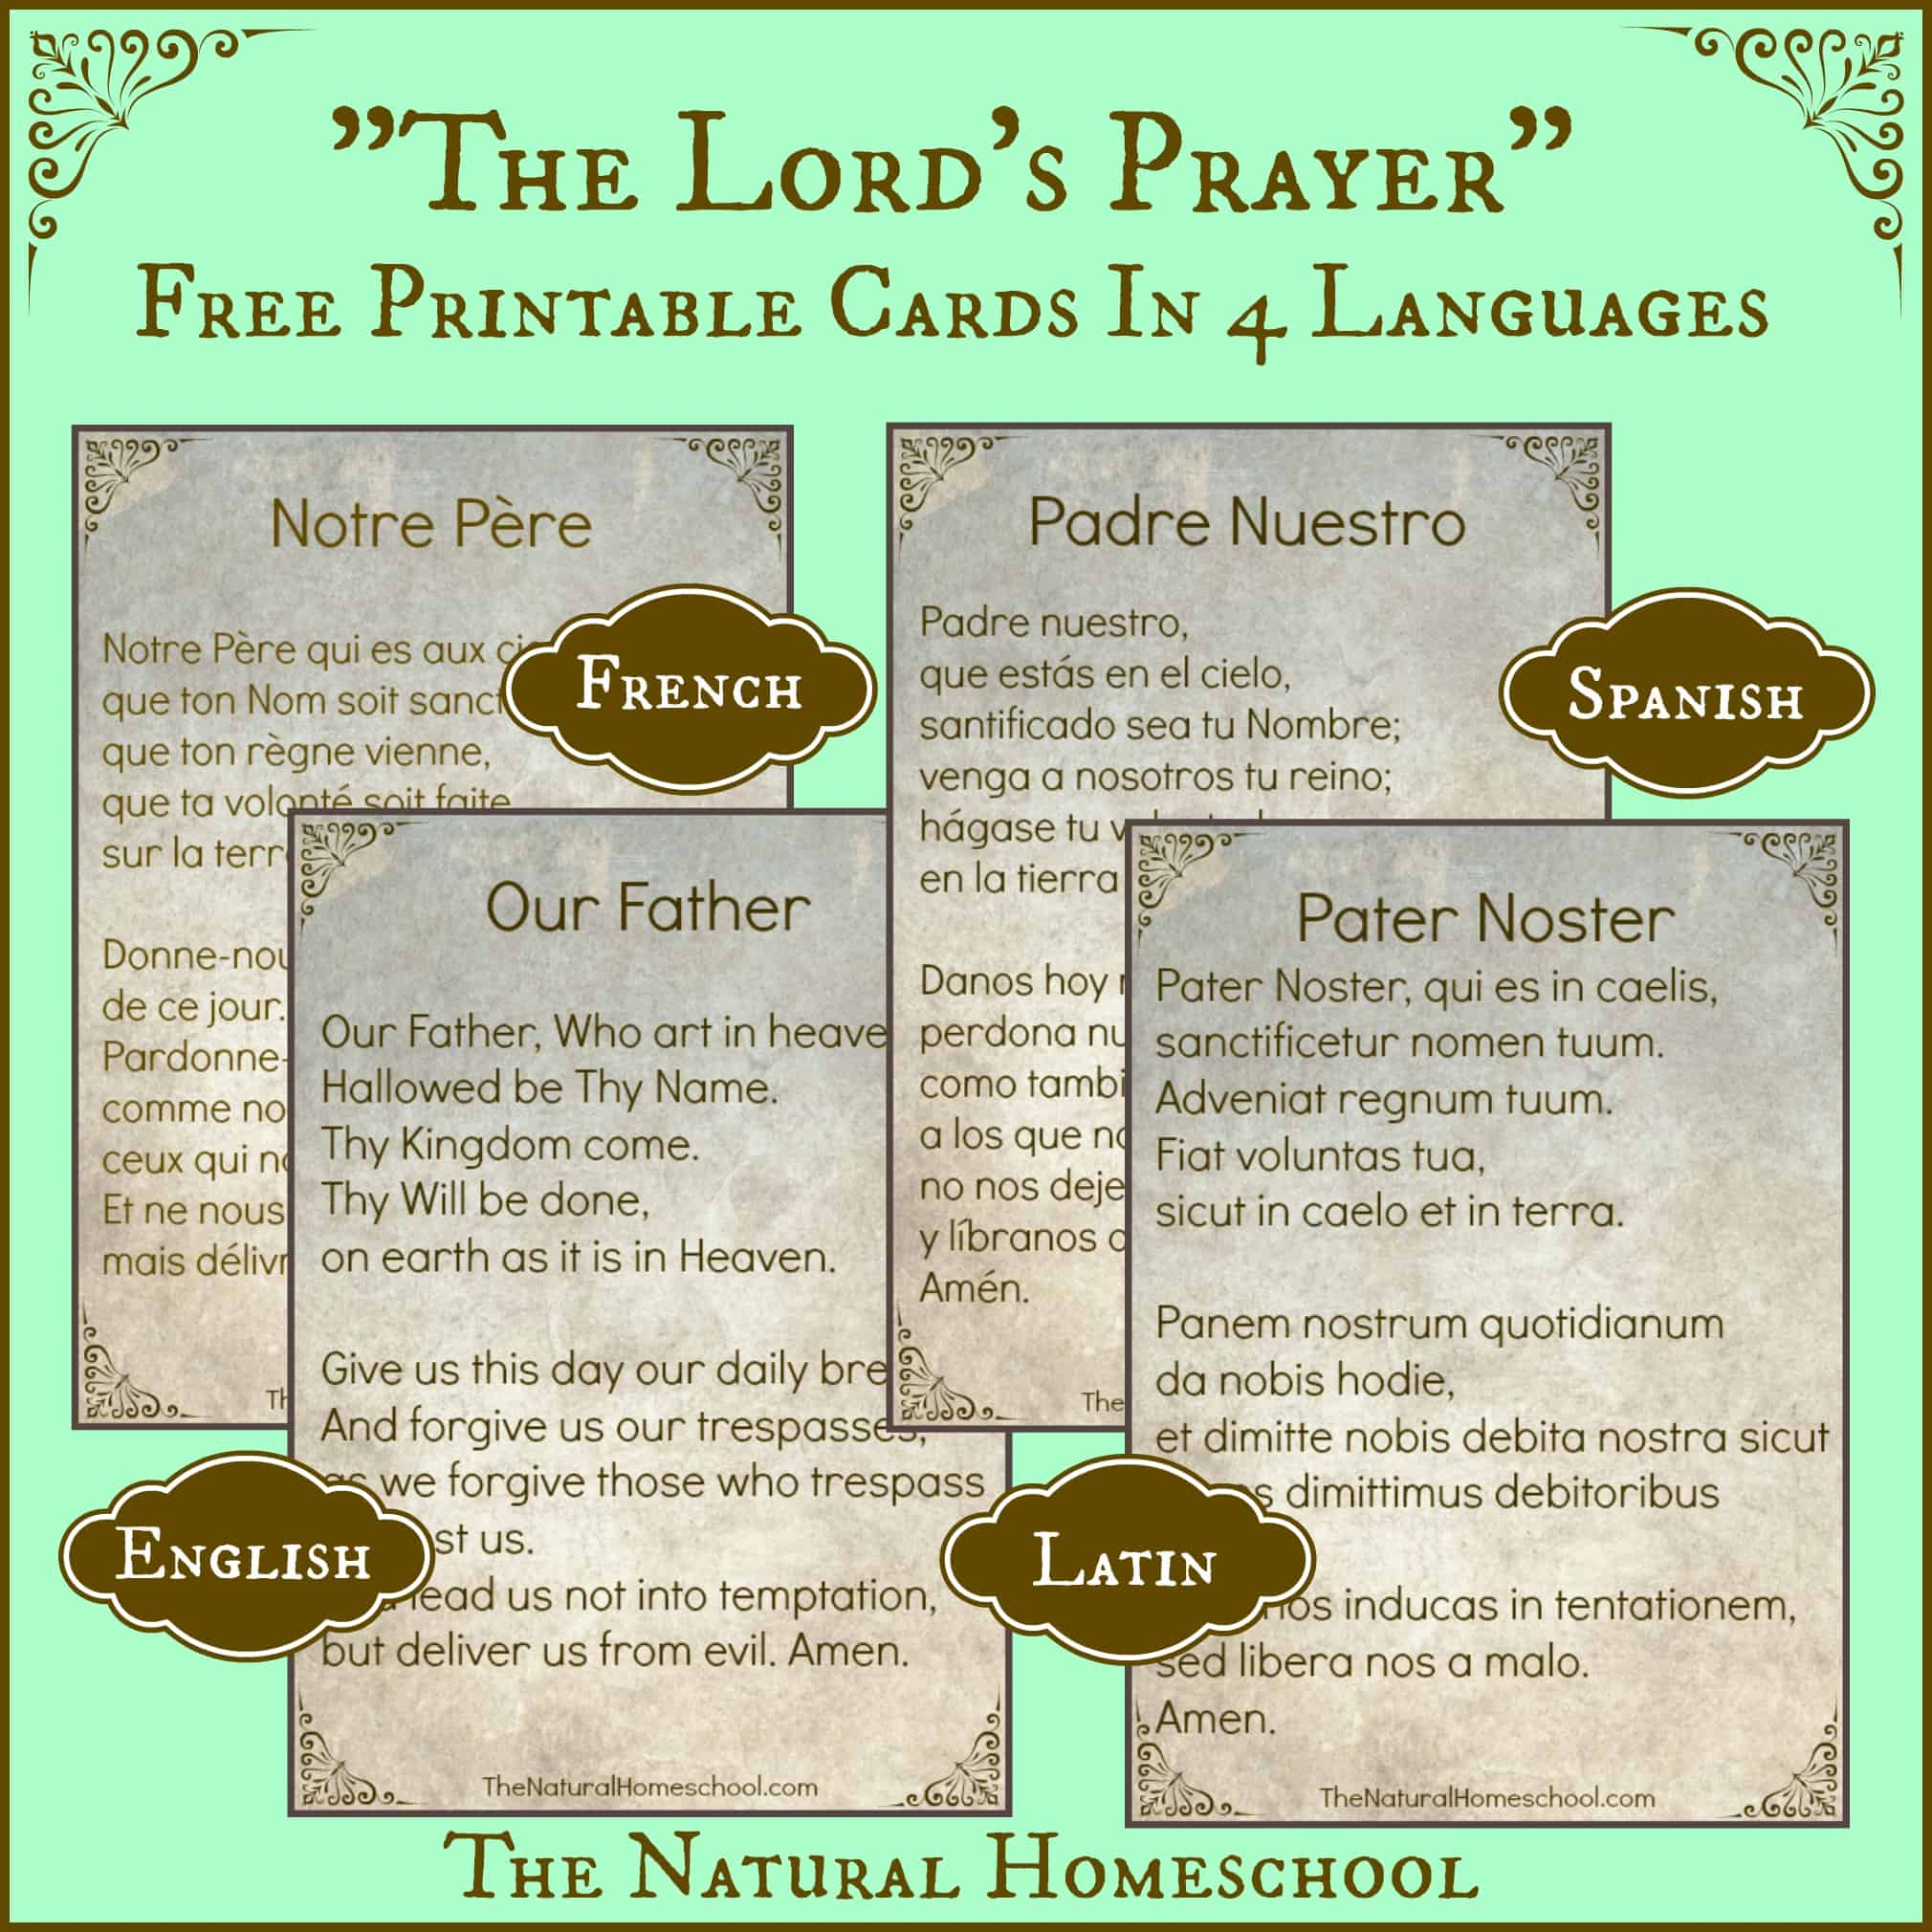 In this post, you will see how can learn The Lord's Prayer words in 4 languages! I have made The Lord's Prayer in Spanish Printable and Latin, English and French!